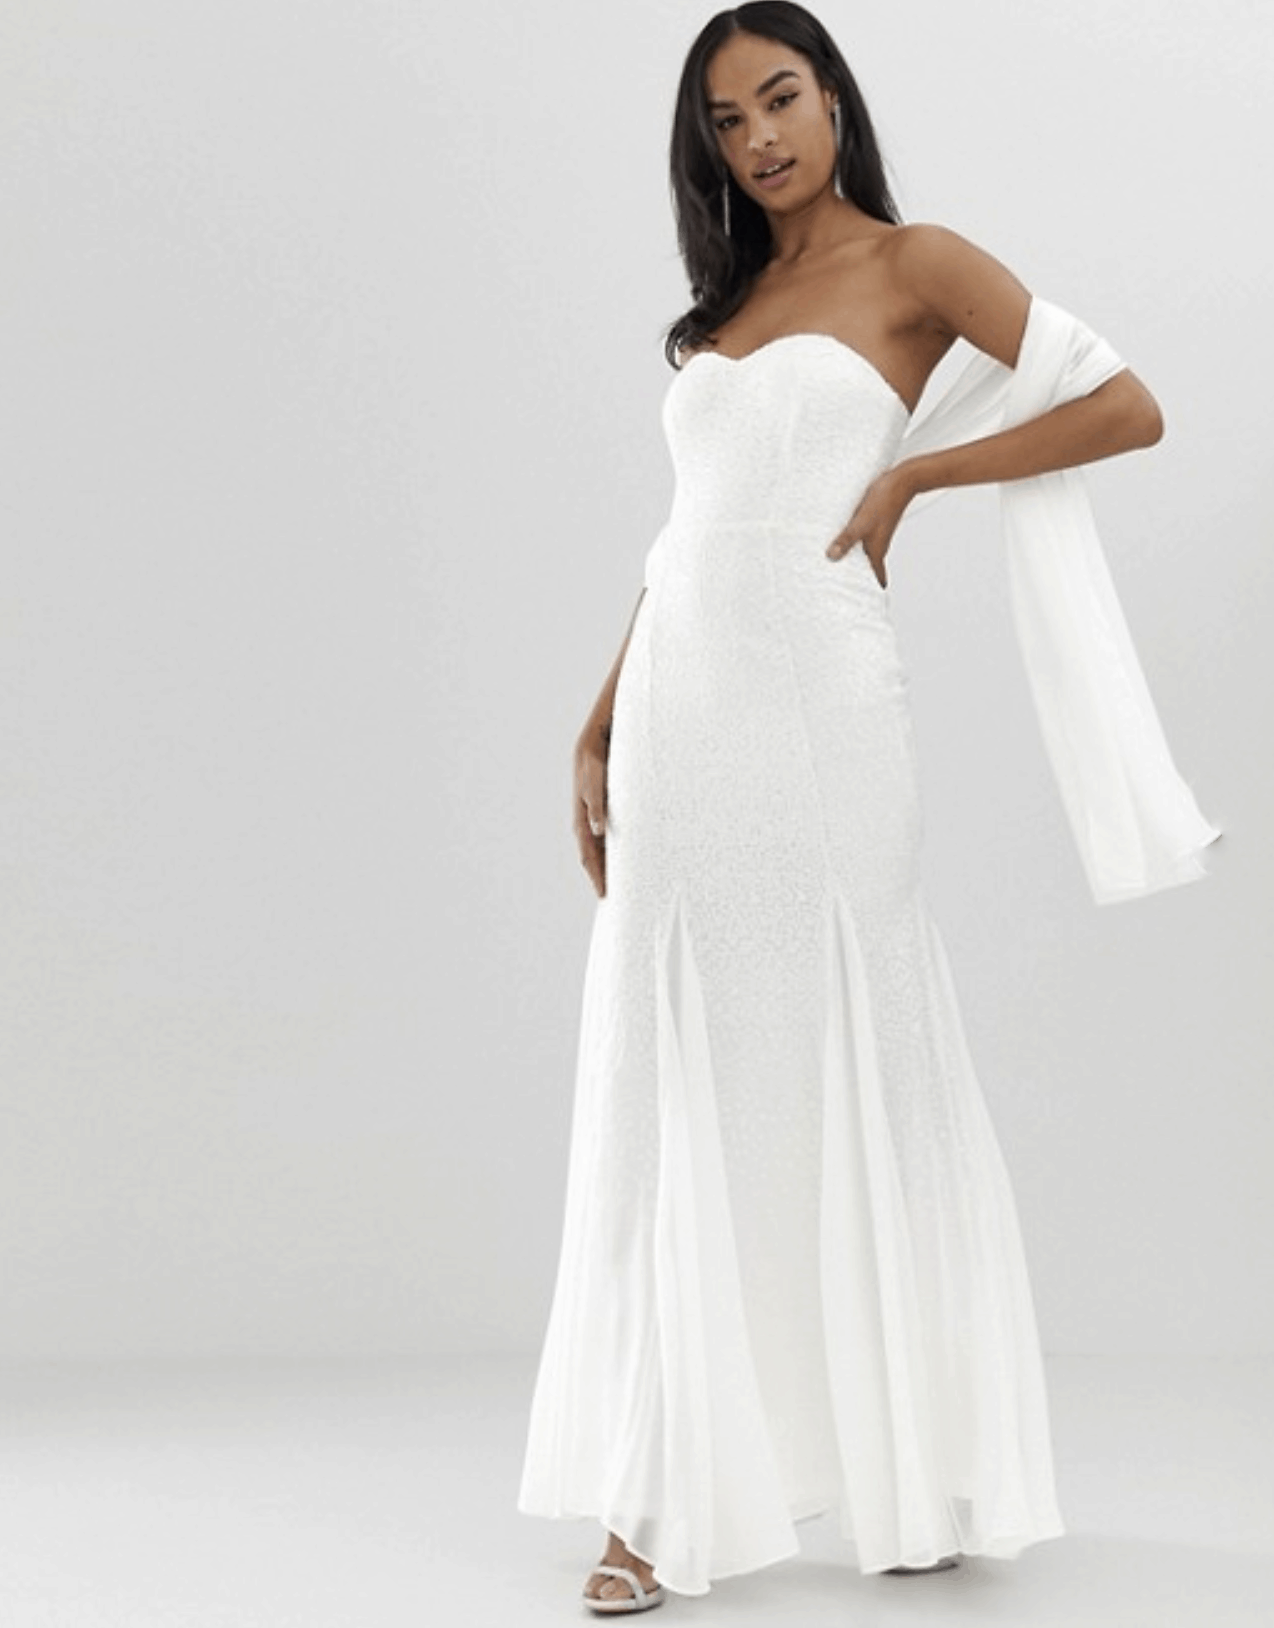 Cheap Affordable Bridal Gowns and Wedding Dresses City Goddess Bridal Bandeau Fishtail Maxi Dresses